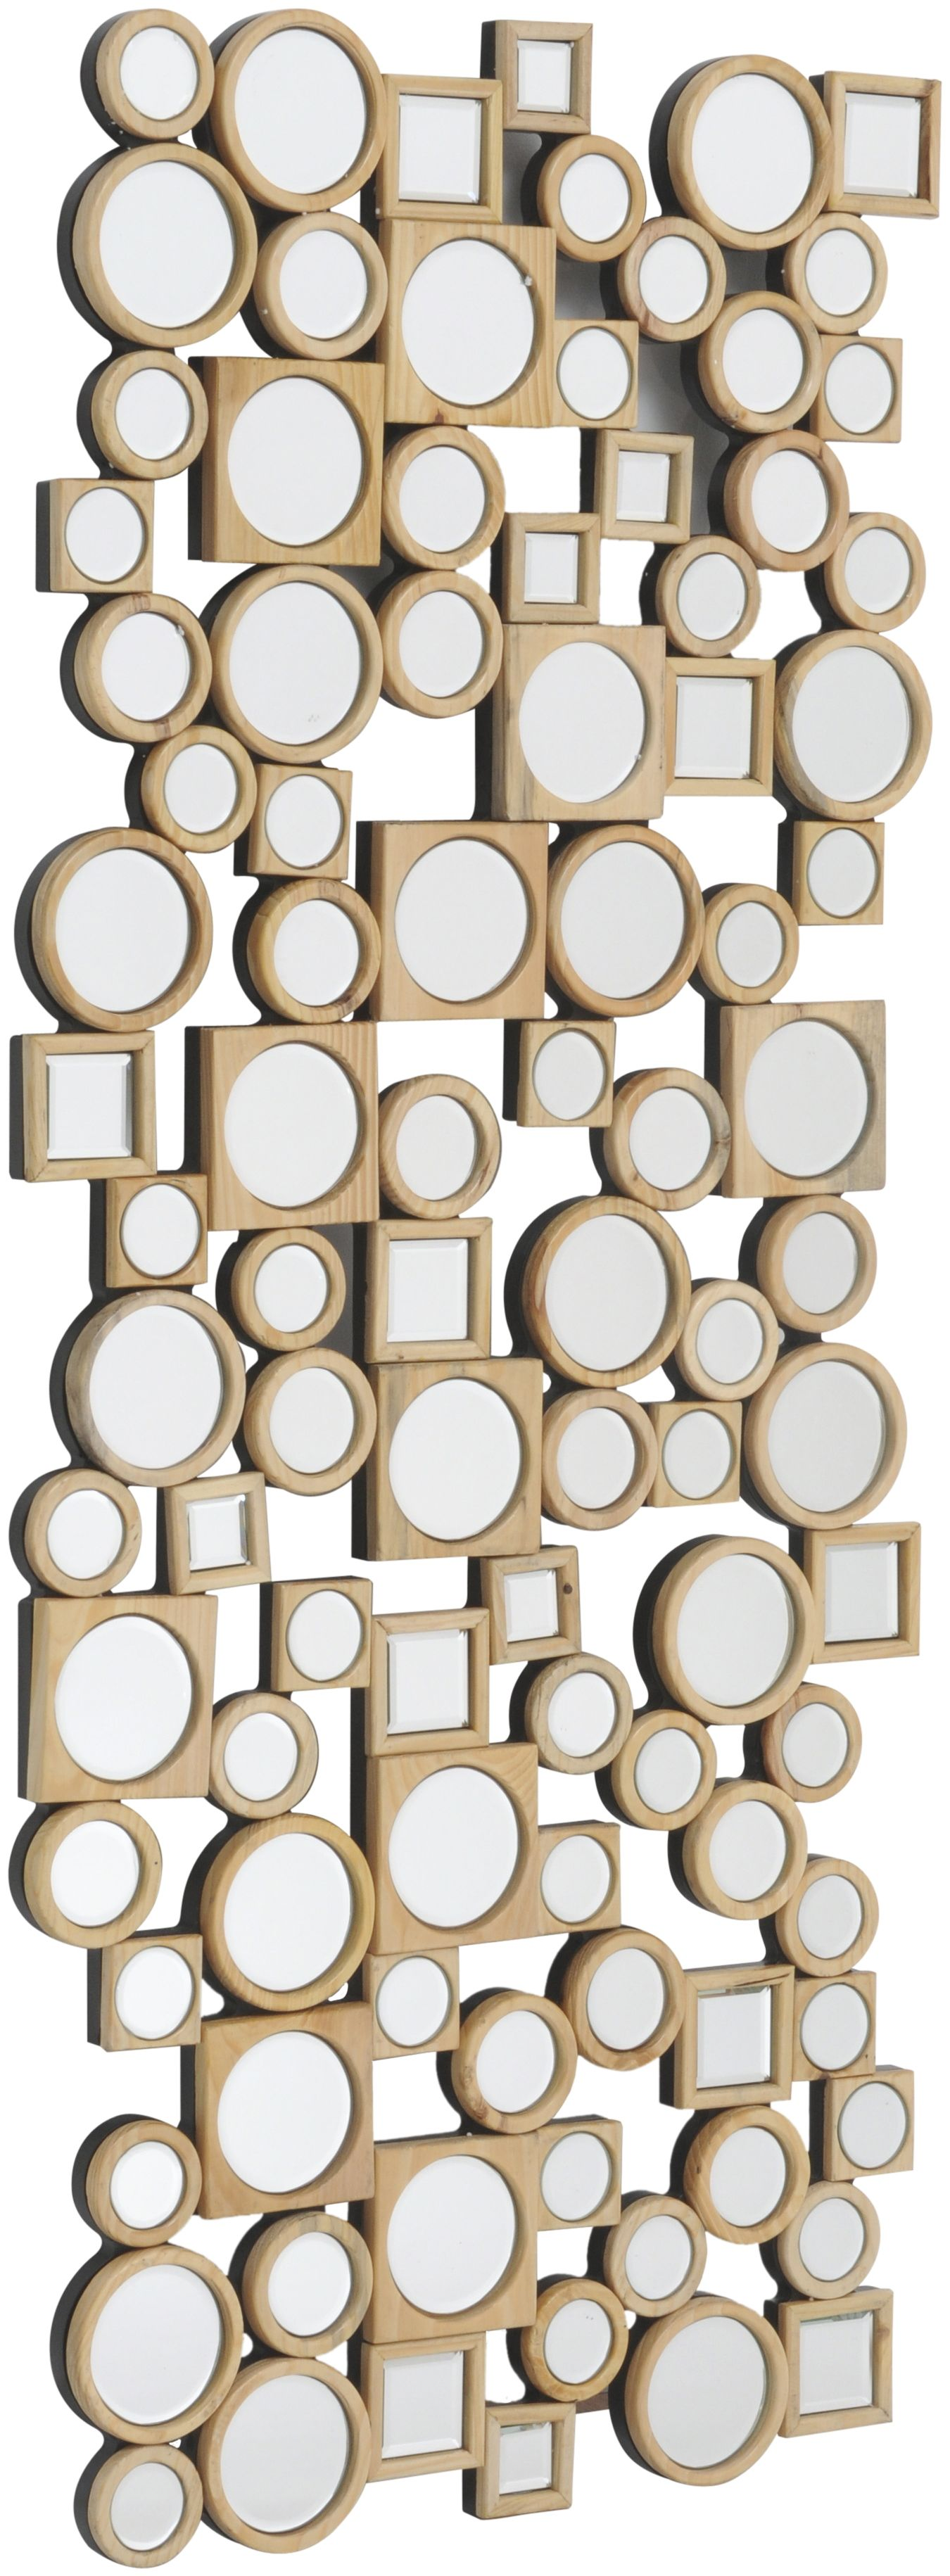 Lowes Wall Mirrors libra's lowes baker rectangular wooden mirror wall art - http